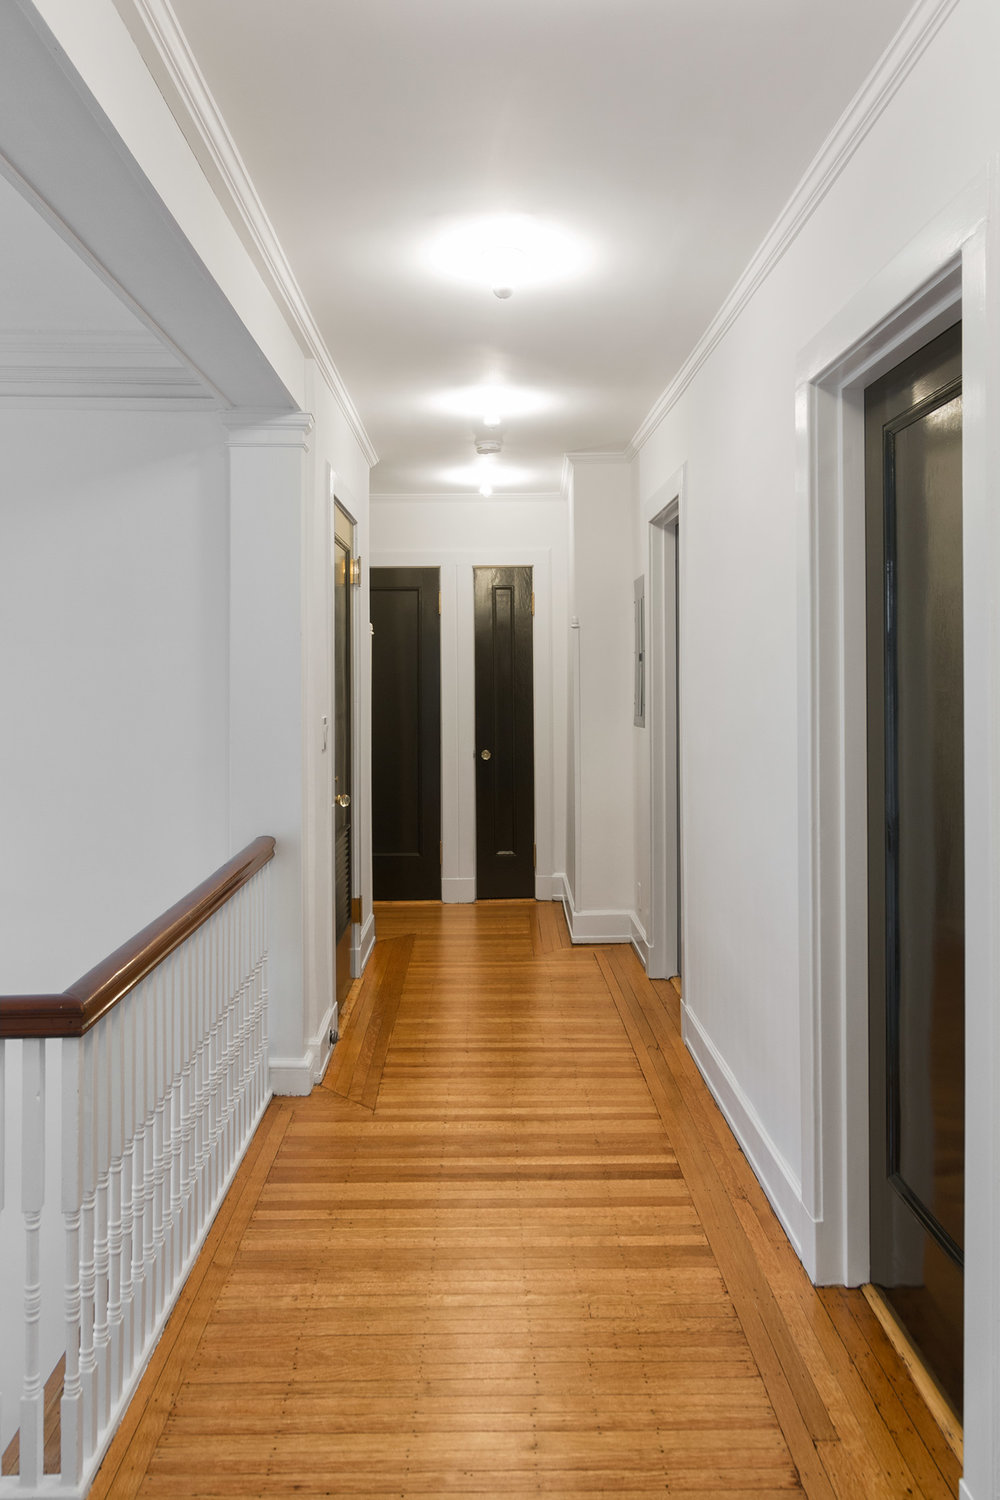 Custom made kitchen cabinets brooklyn - Entirely Renovated Multi Level Home Custom Made Kitchen Cabinets Stone Work Restoration Of Windows Floors Painted Walls